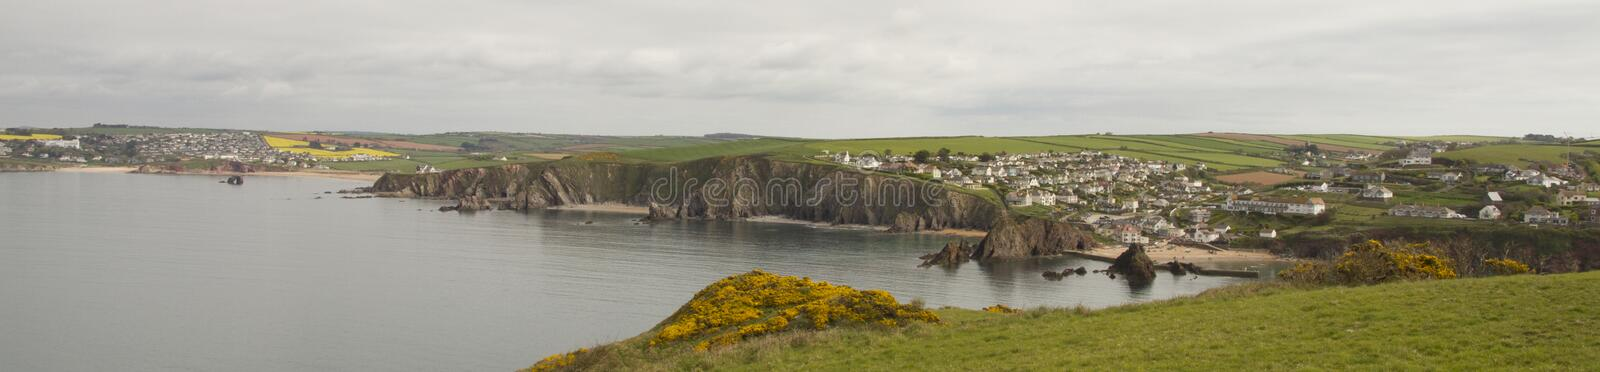 View of Hope Cove, Devon from the Bolt tail headland. Yellow heather in the foreground. Hope cove bay and Thurlestone bay in background stock photos